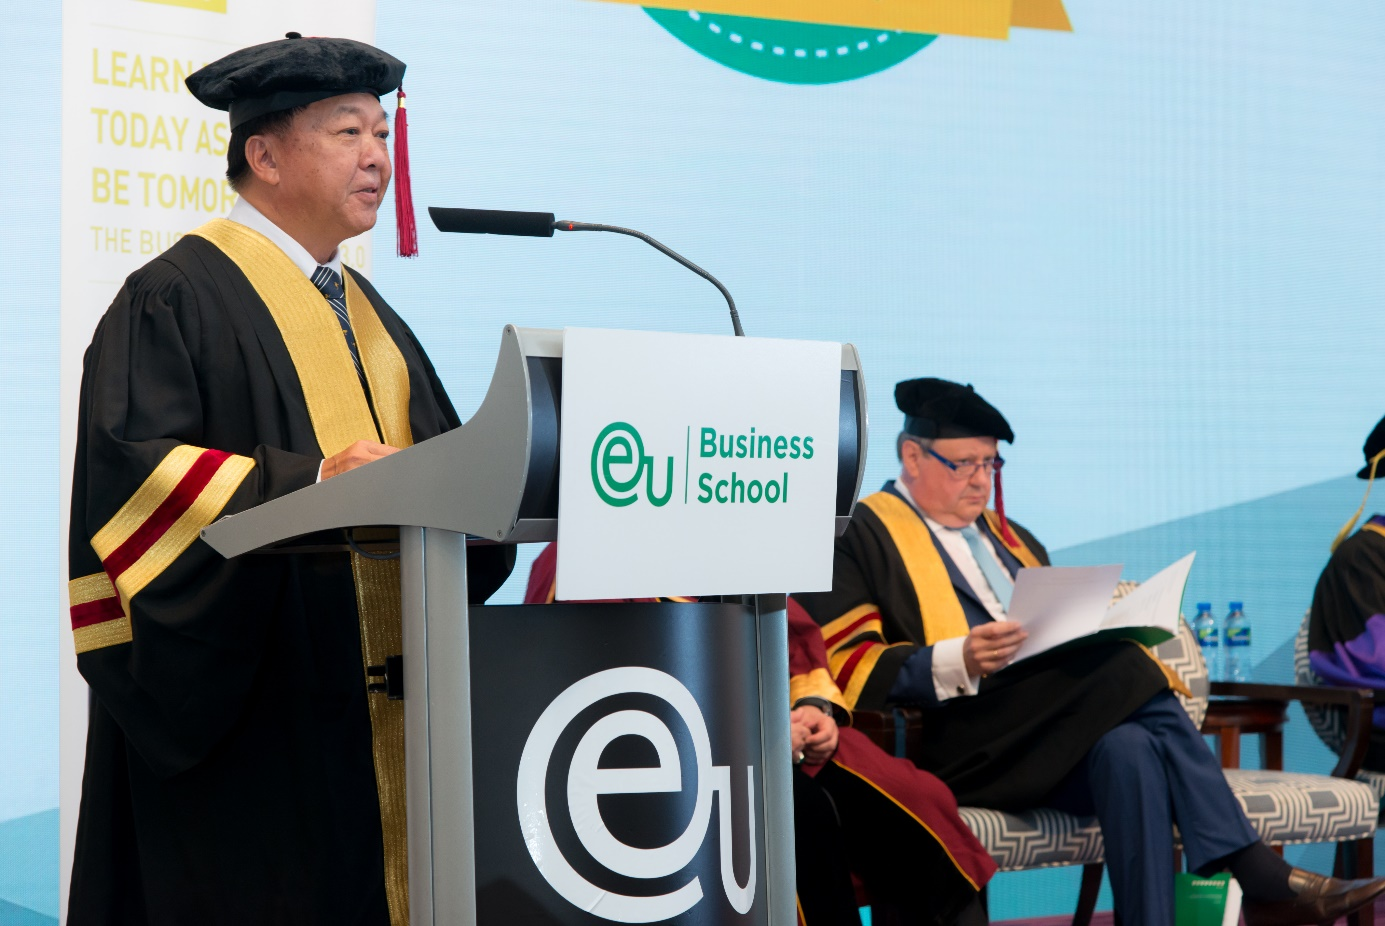 At his commencement address to the 2018 EU Asia Commencement Ceremony, Kota Kinabalu mayor Datuk Yeo Boon Hai urged fresh graduates to promote corporate social responsibility and business sustainability.